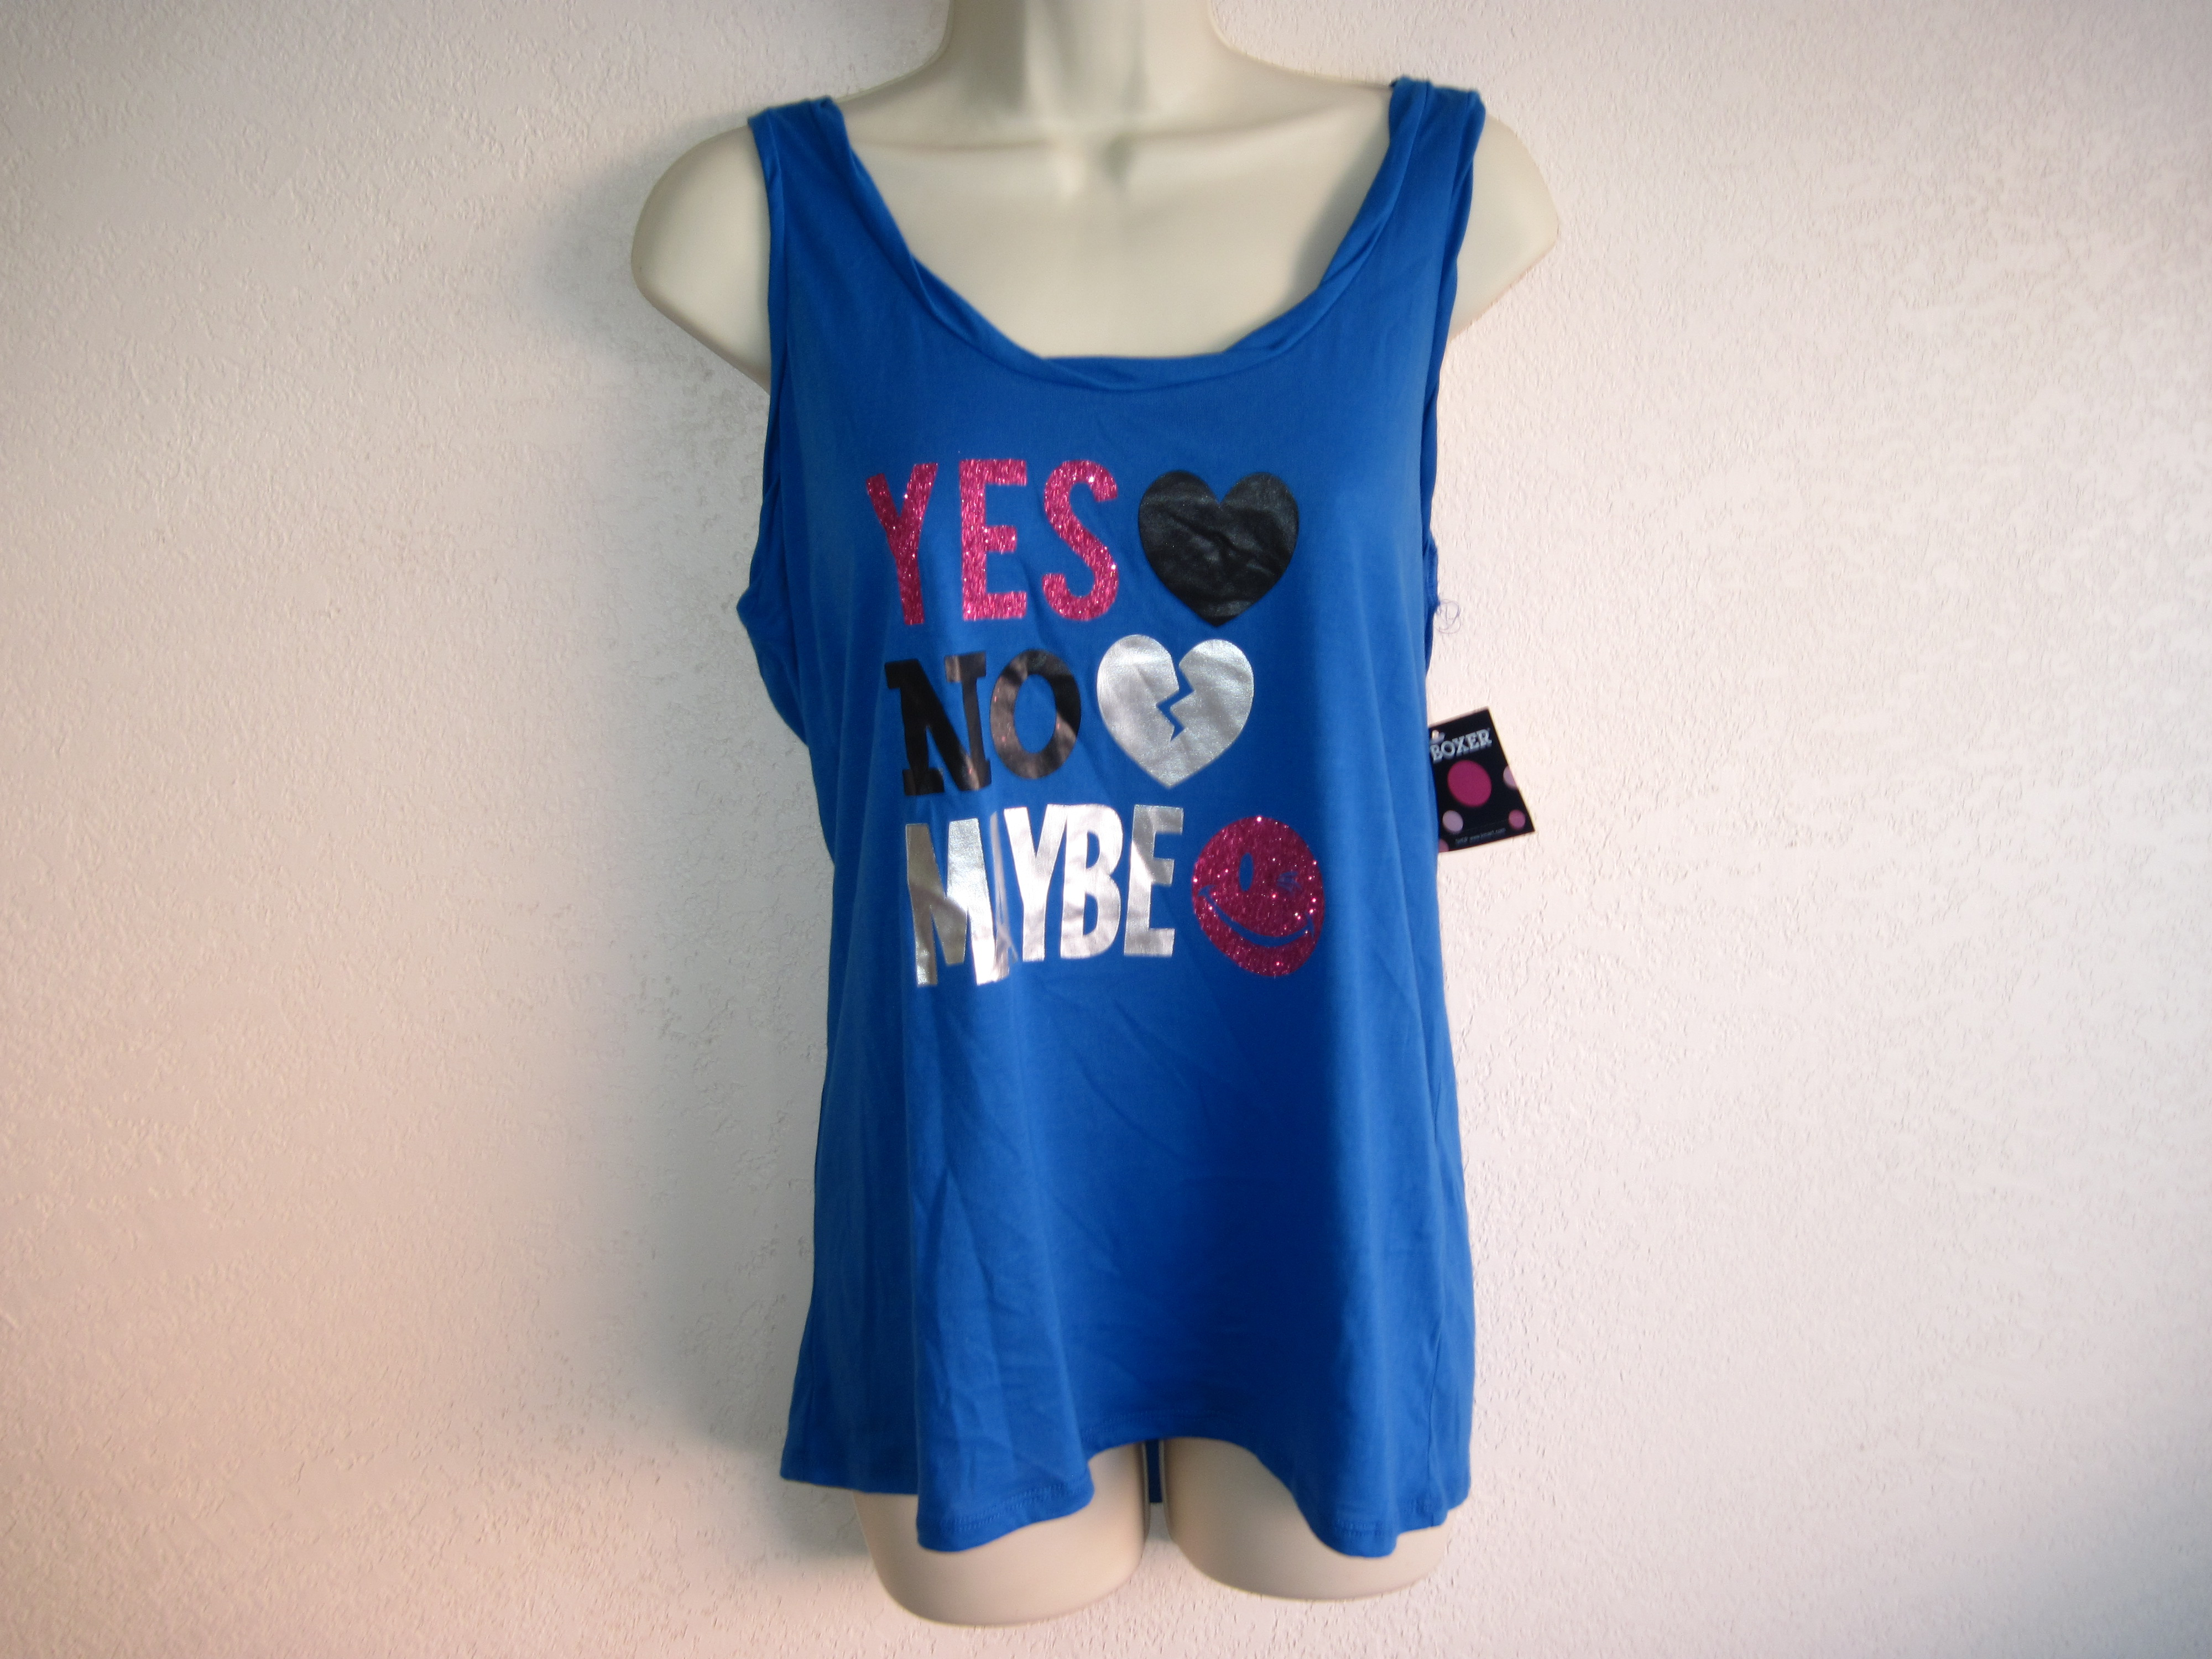 Joe Boxer Sz M Tank Top Yes No Maybe on front Blue